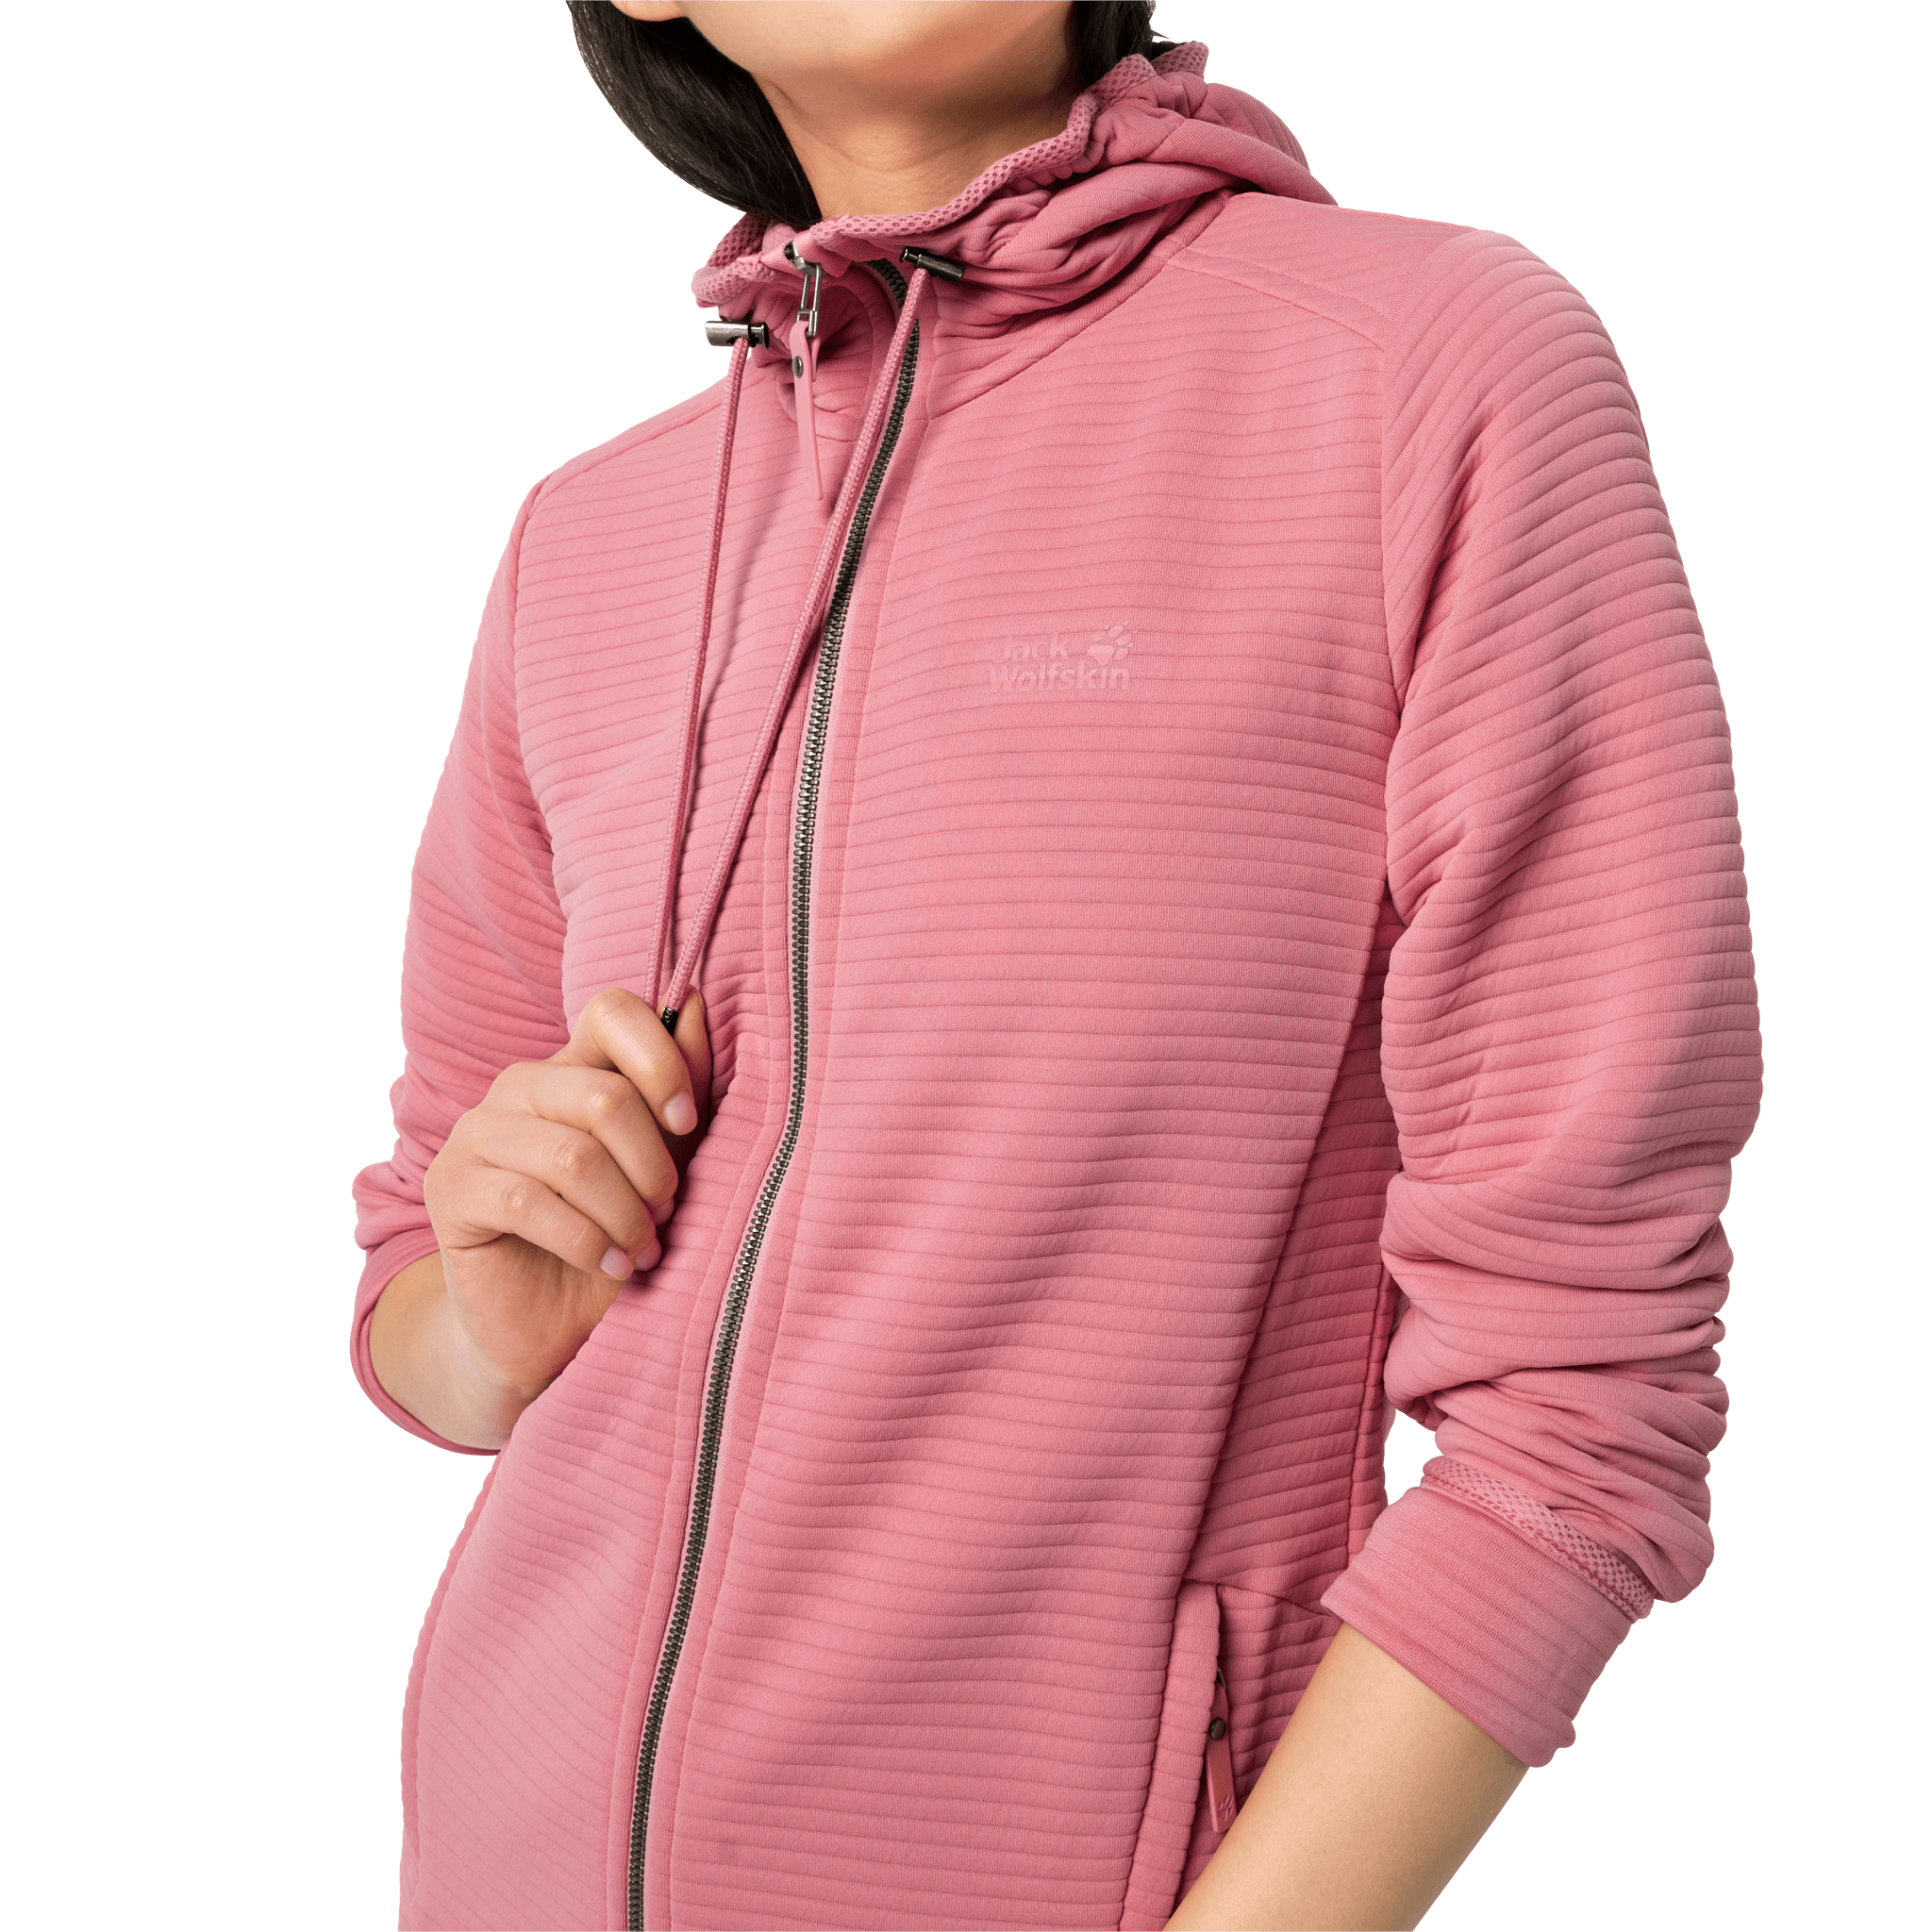 Rose Quartz Lightweight Travel Fleece Jacket